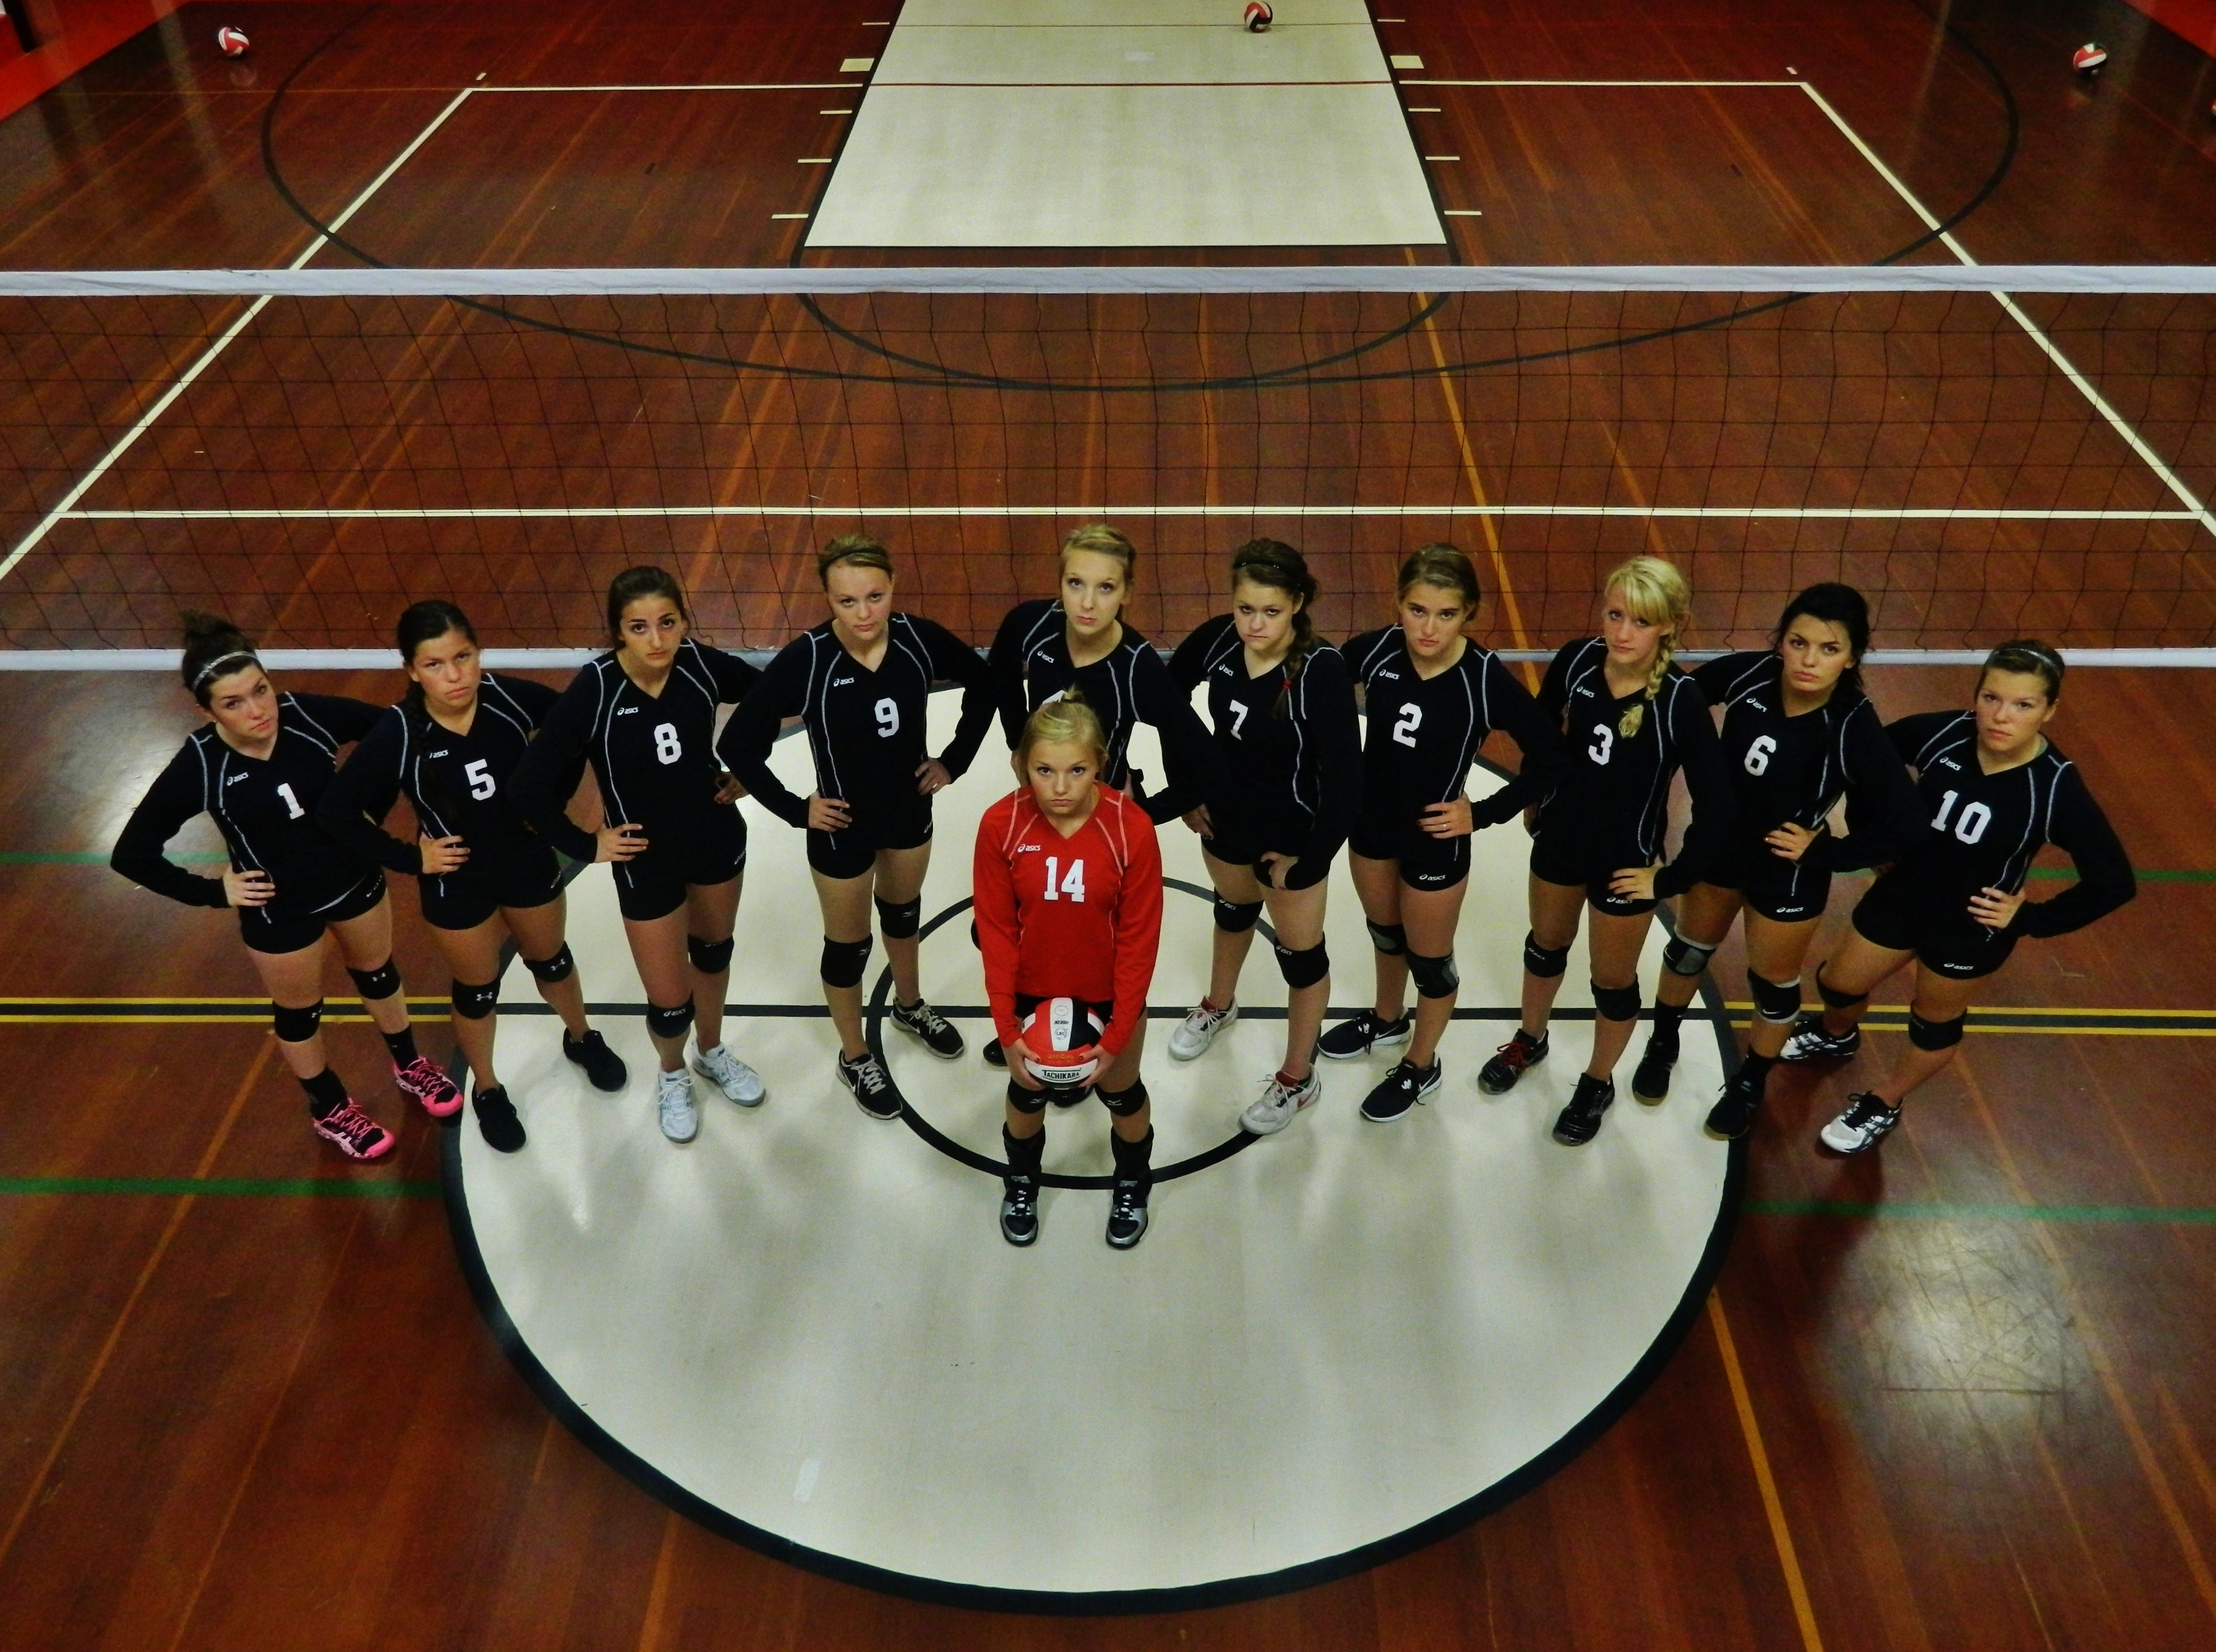 Volleyball Team Picture Pose Ideas Volleyball Team Photos Volleyball Pictures Volleyball Team Pictures